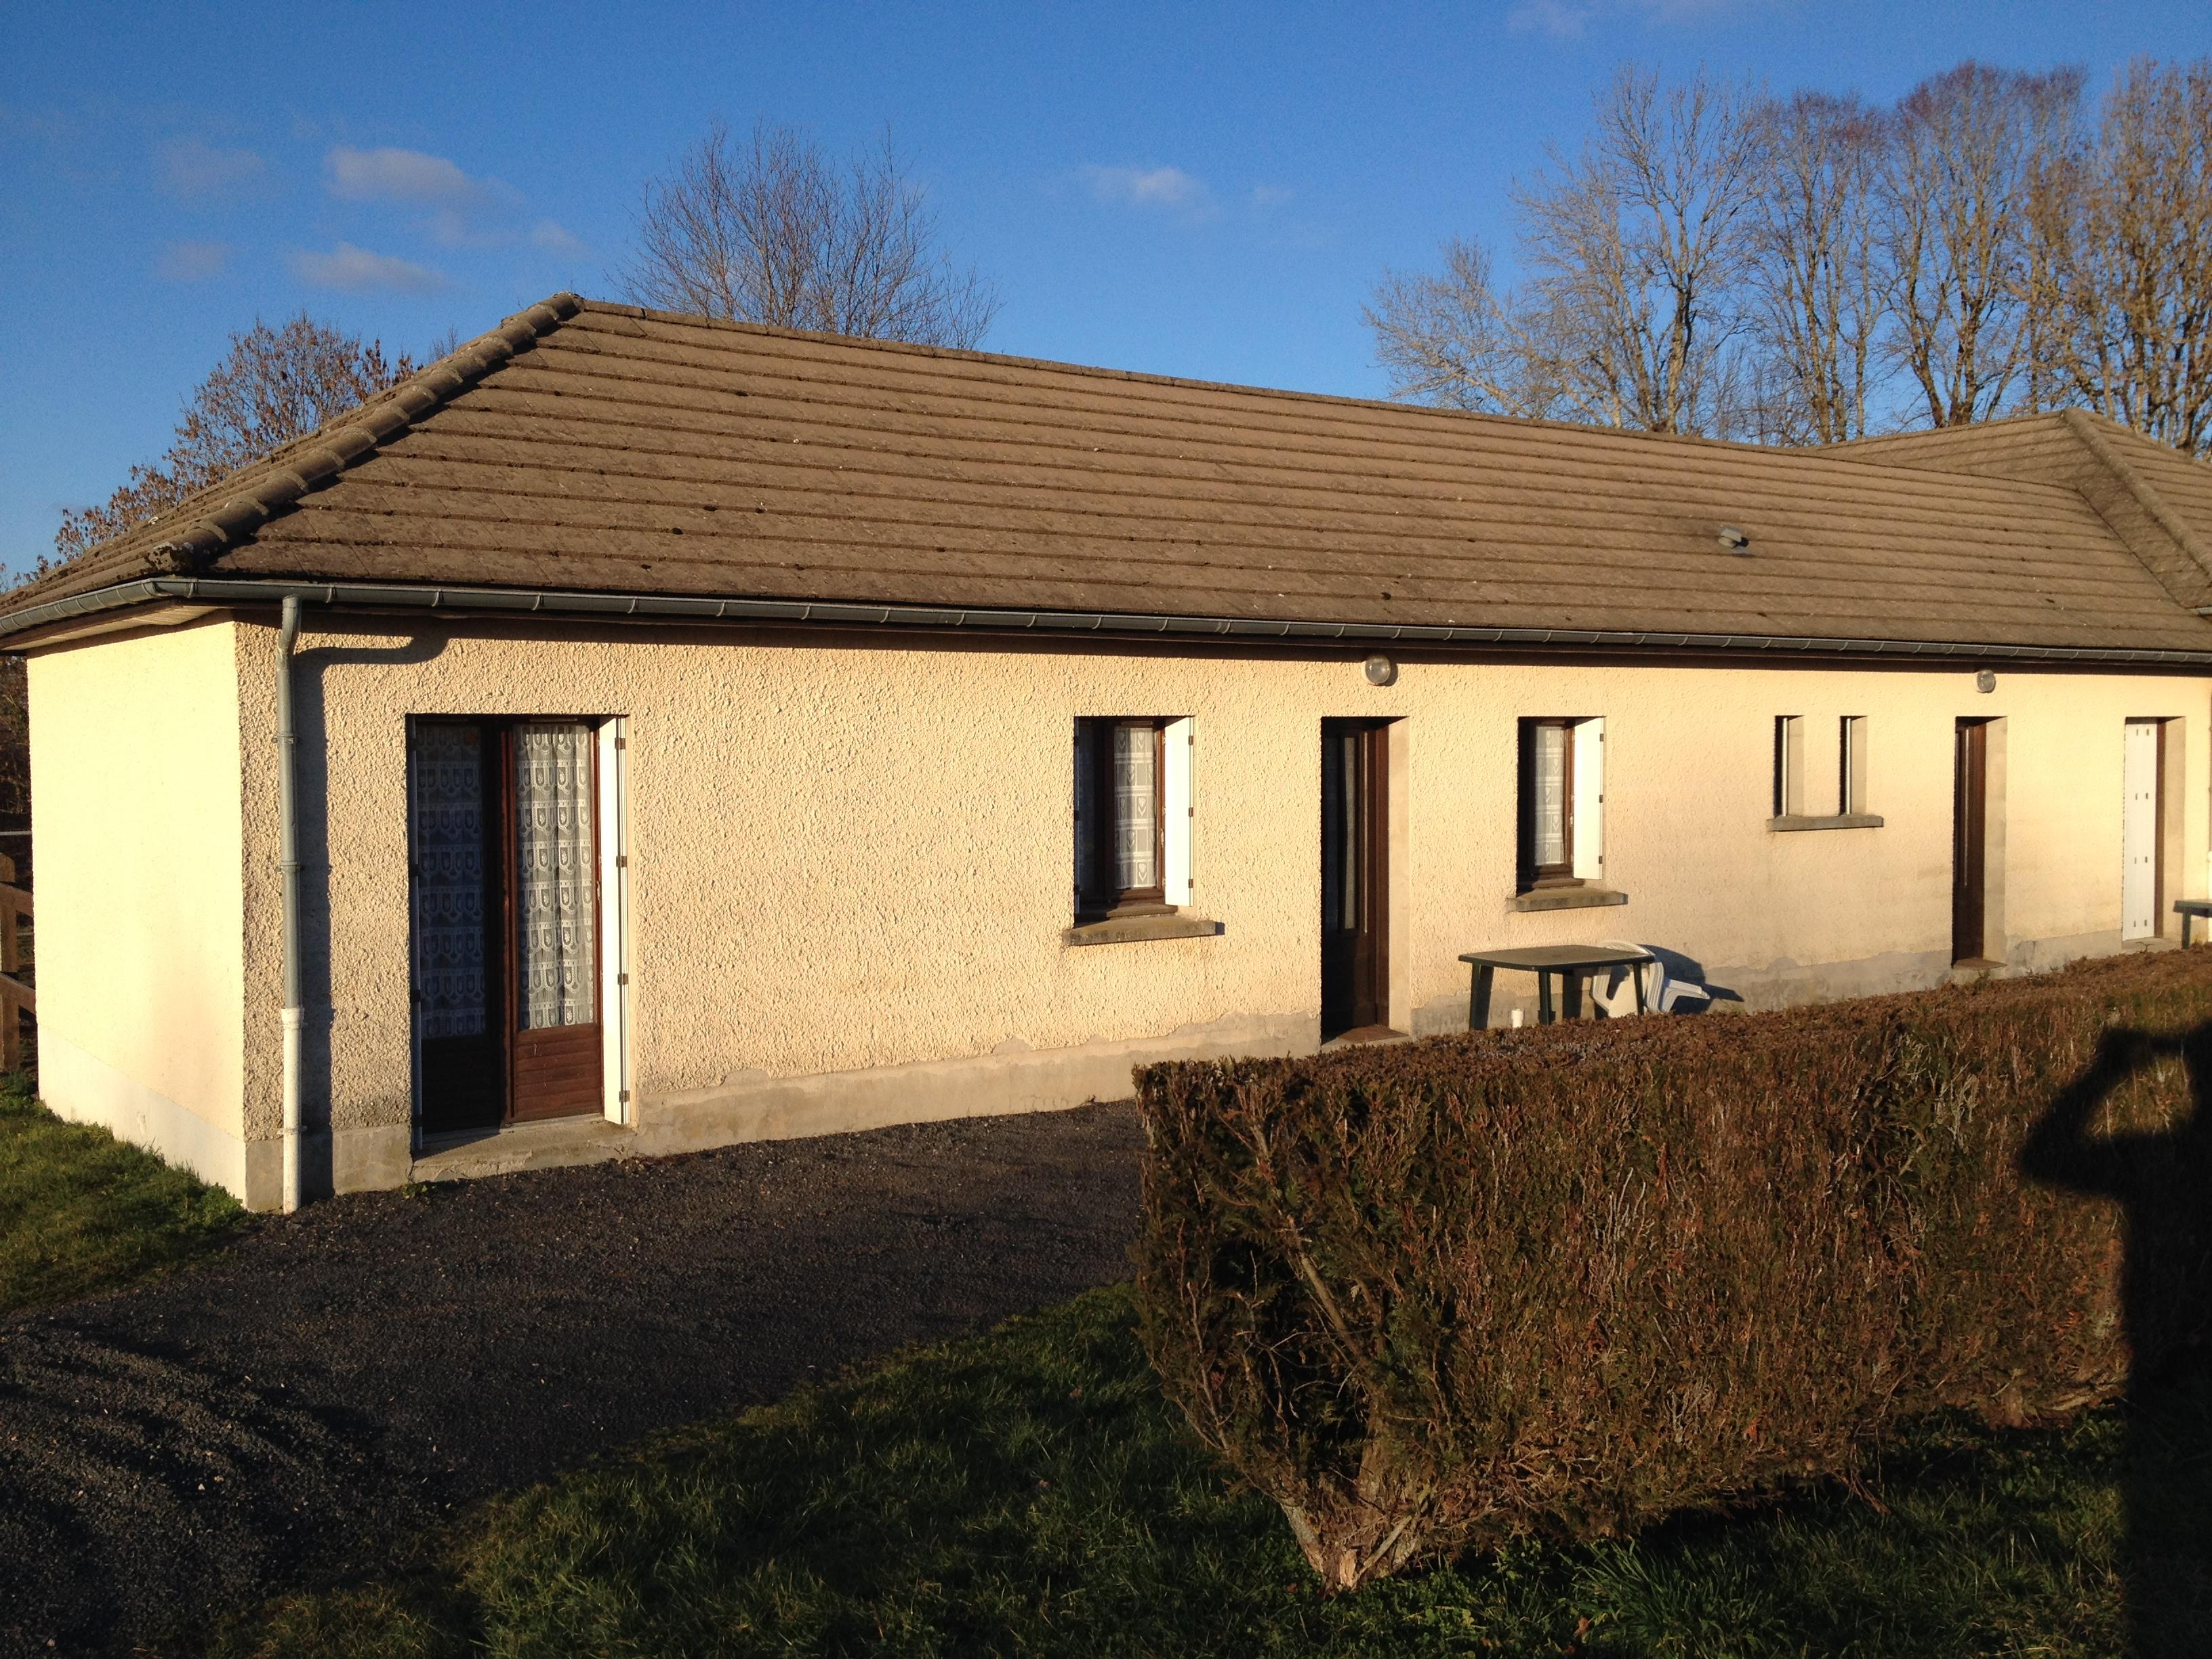 Gasthof Puy St Mary N°607 (One-Floor Holiday Home Located 2.5 Kms From The Campsite)